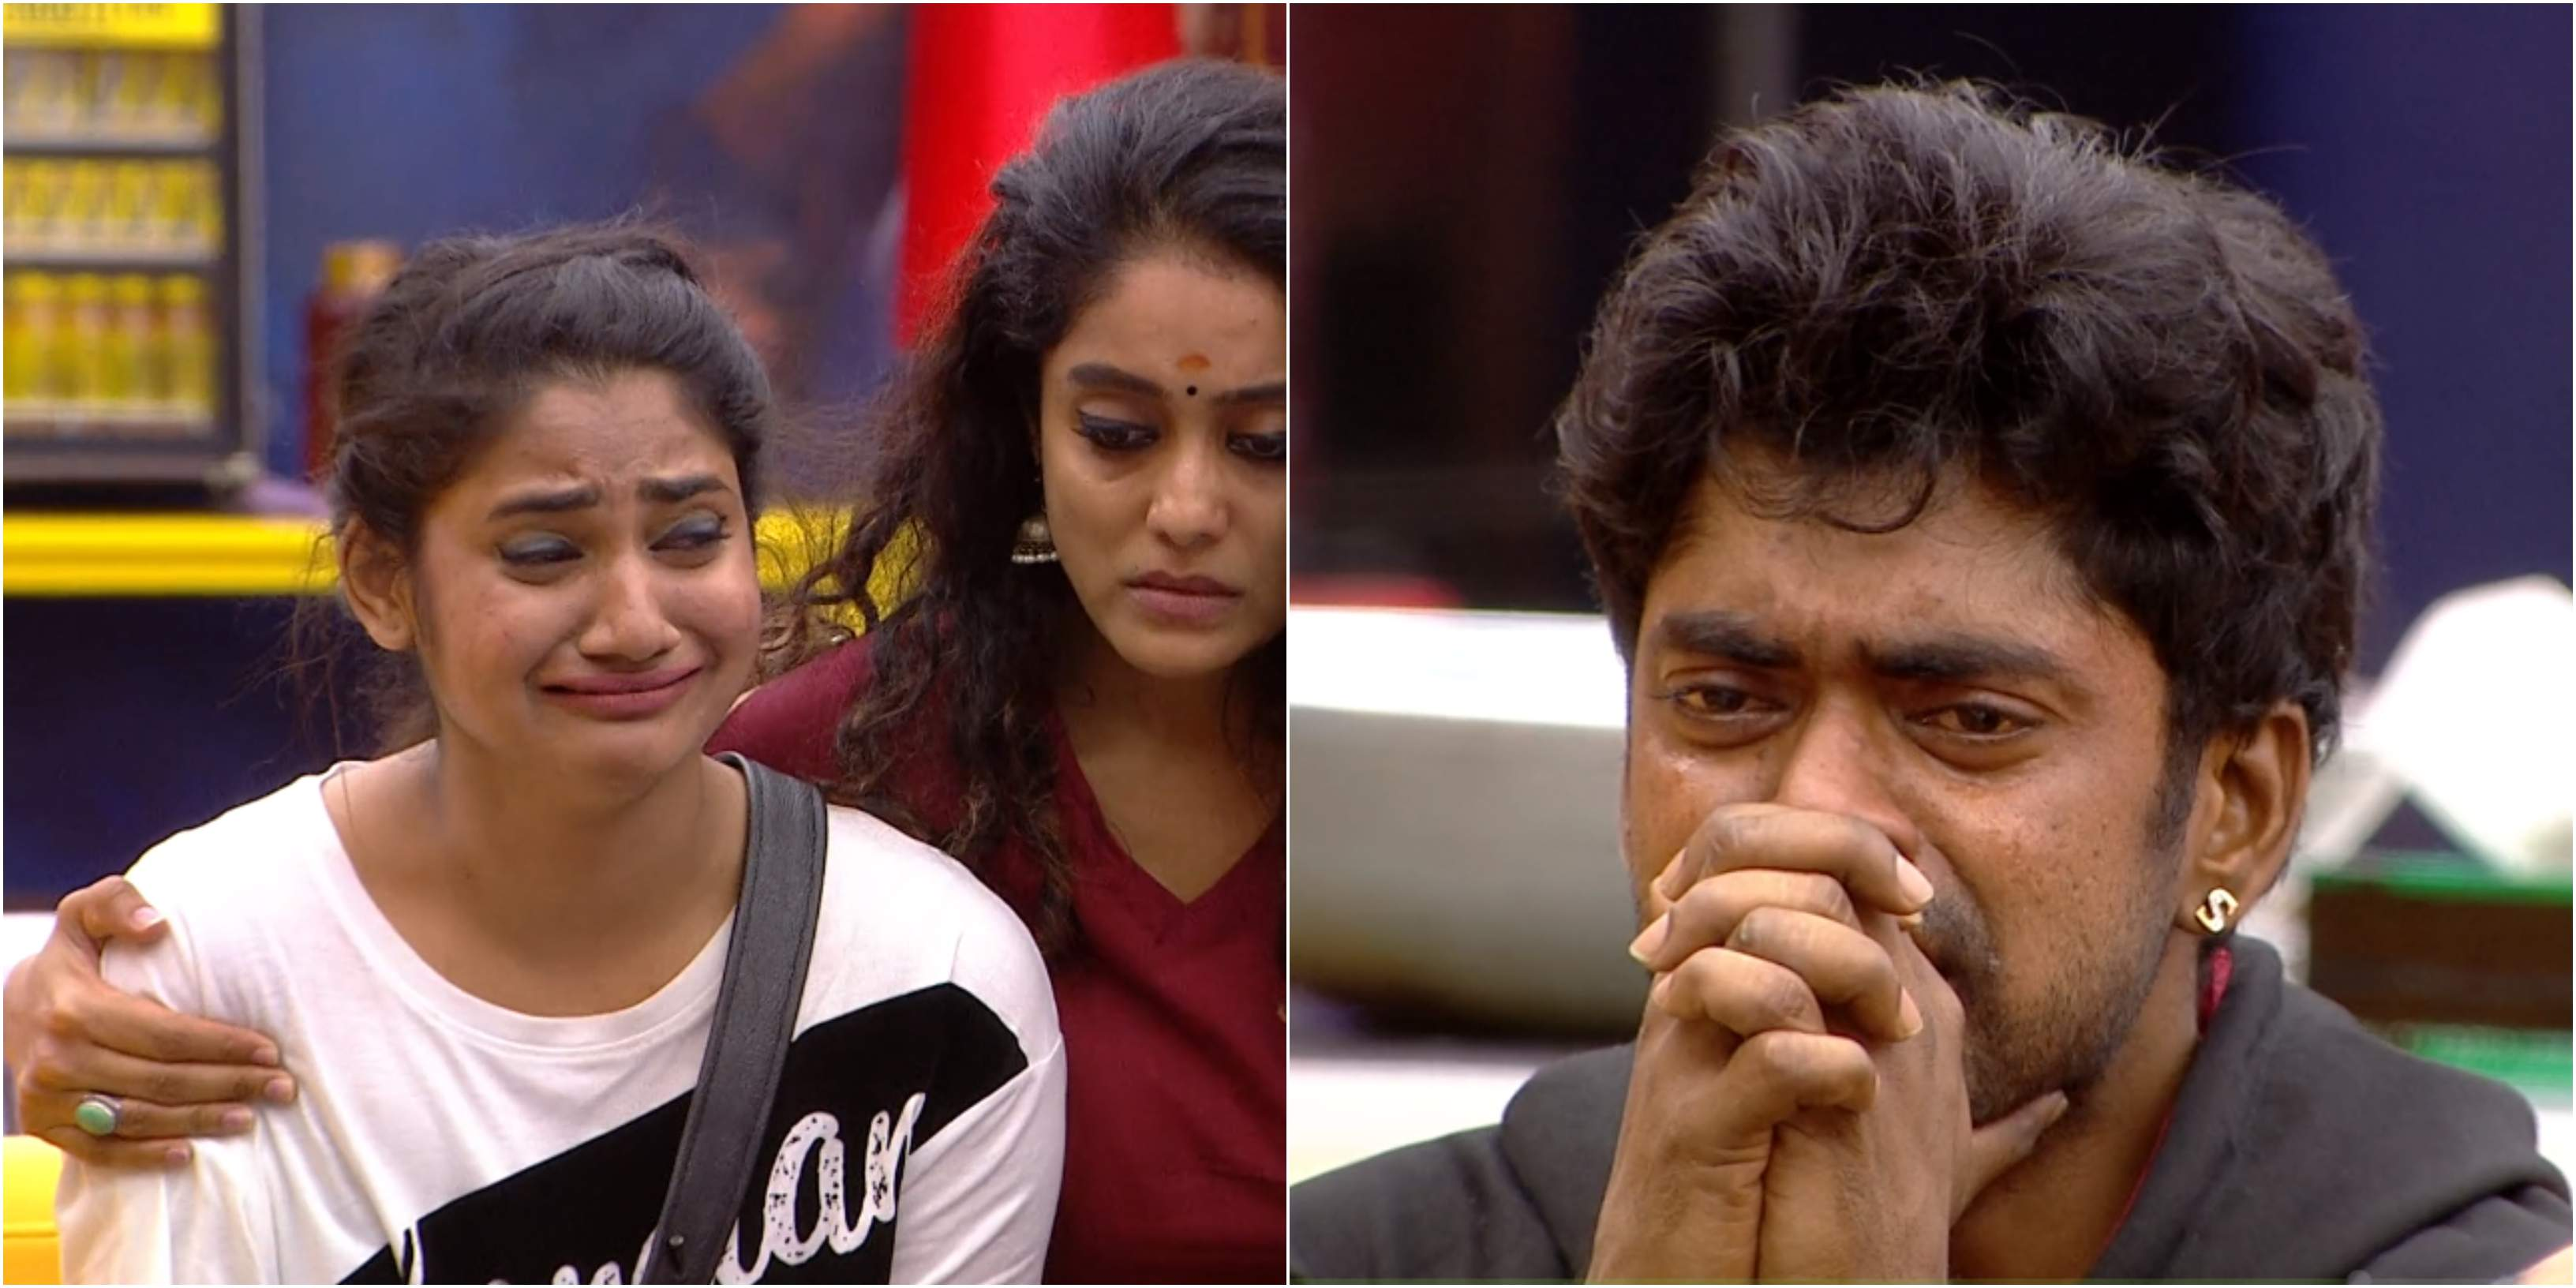 Bigg Boss Tamil 3: The surprise eviction of Saravanan causes